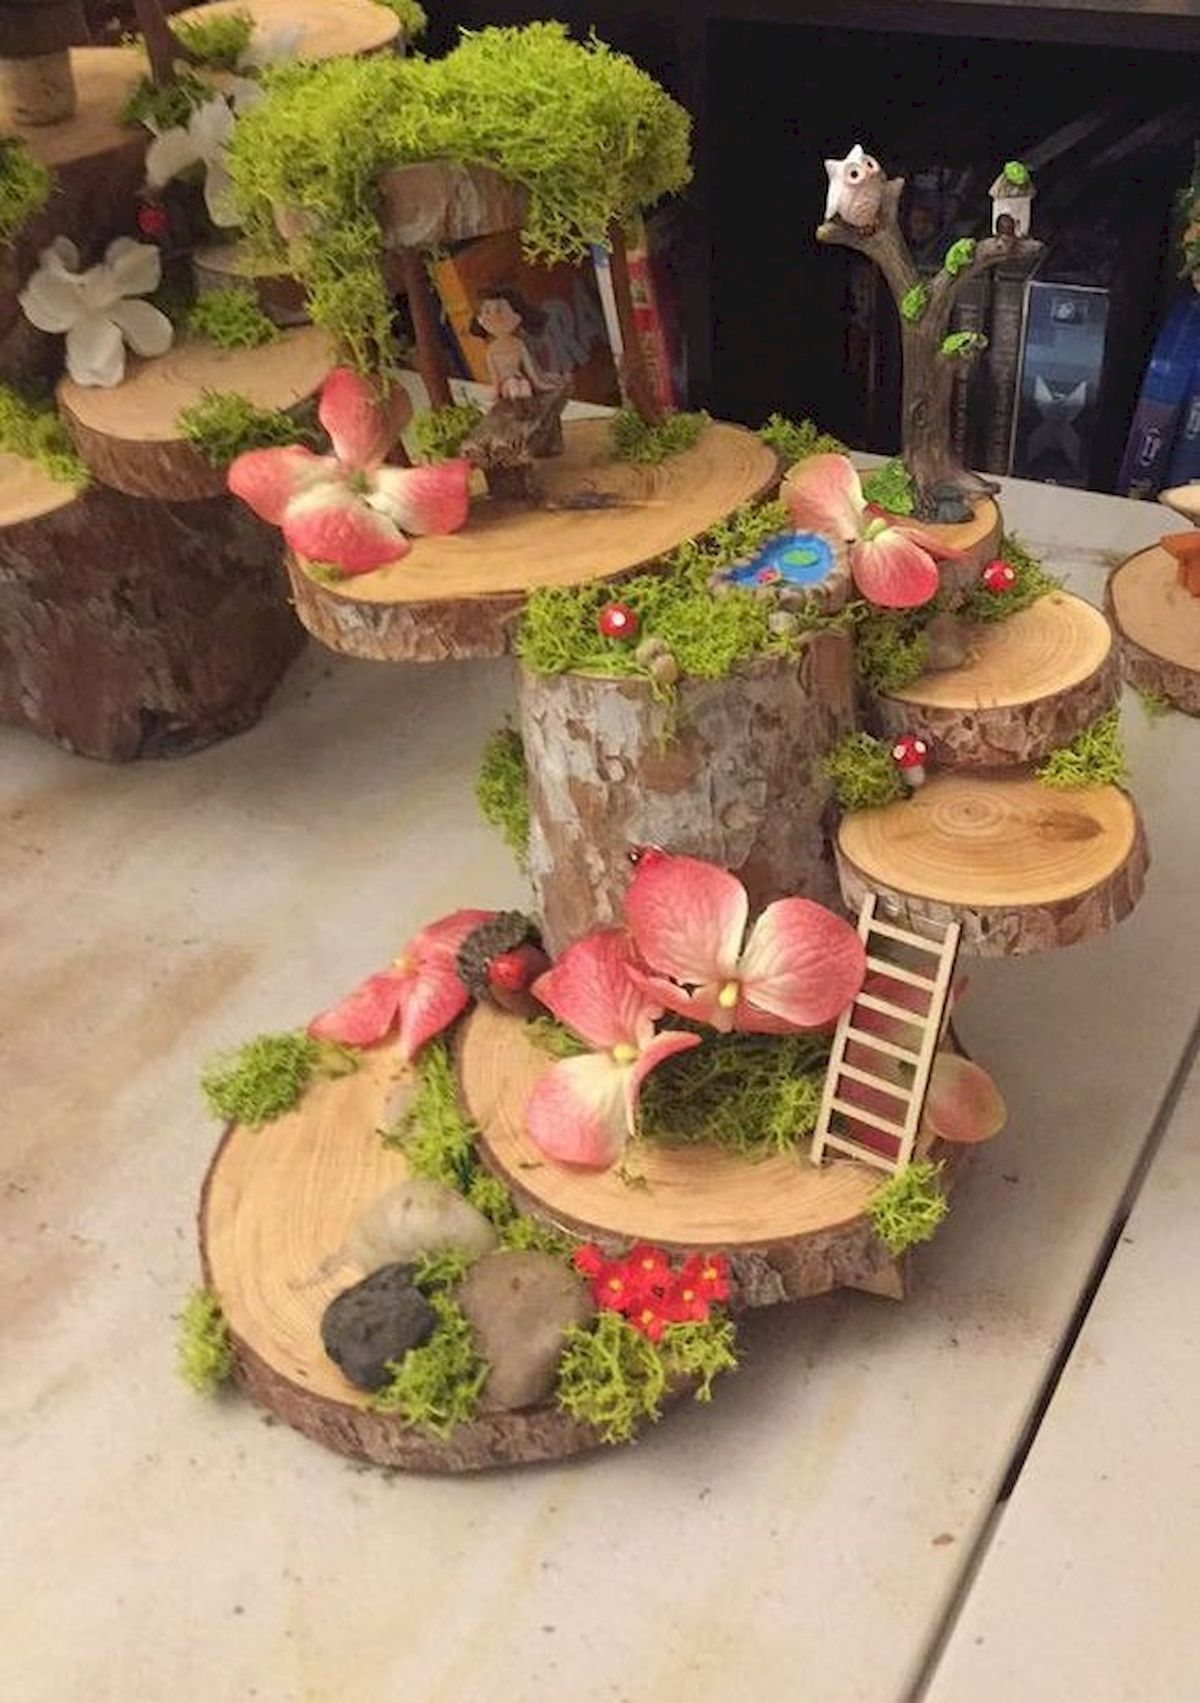 47 Amazing Miniature Garden Design Ideas 43 Fairygardening Miniaturgarten Garten Design Diy Garten